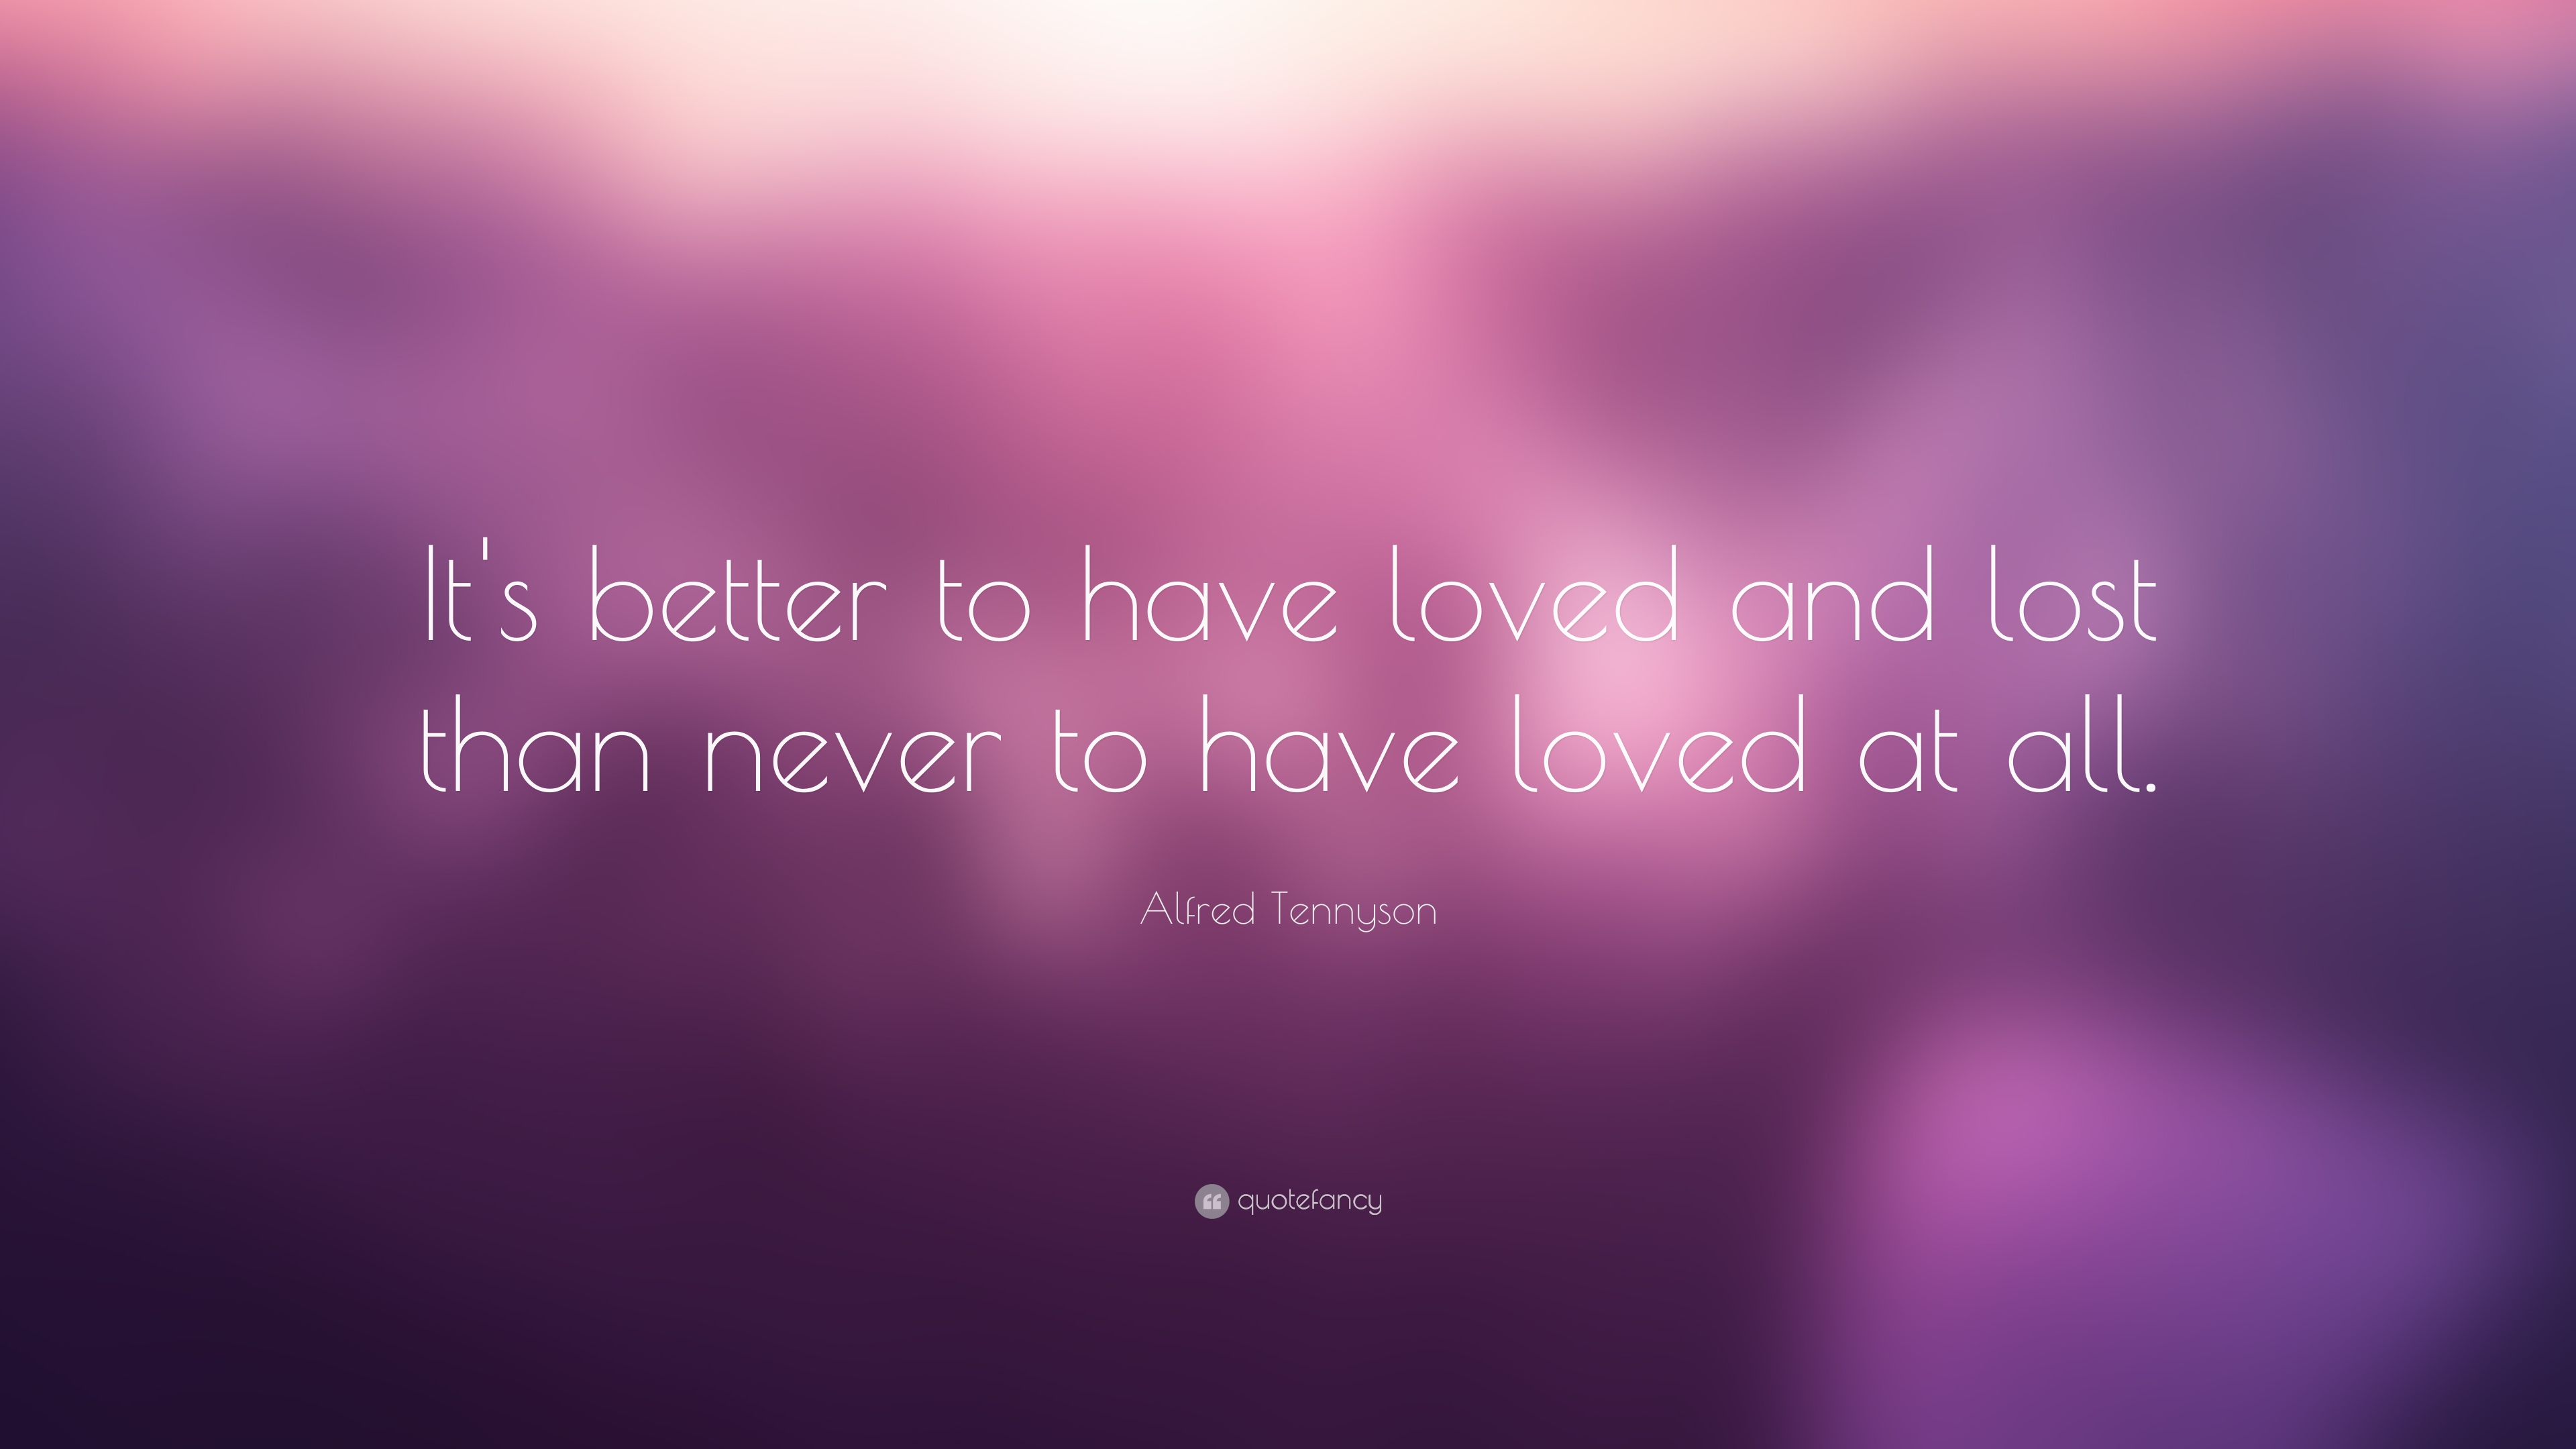 Alfred Tennyson Quote It s better to have loved and lost than never to have